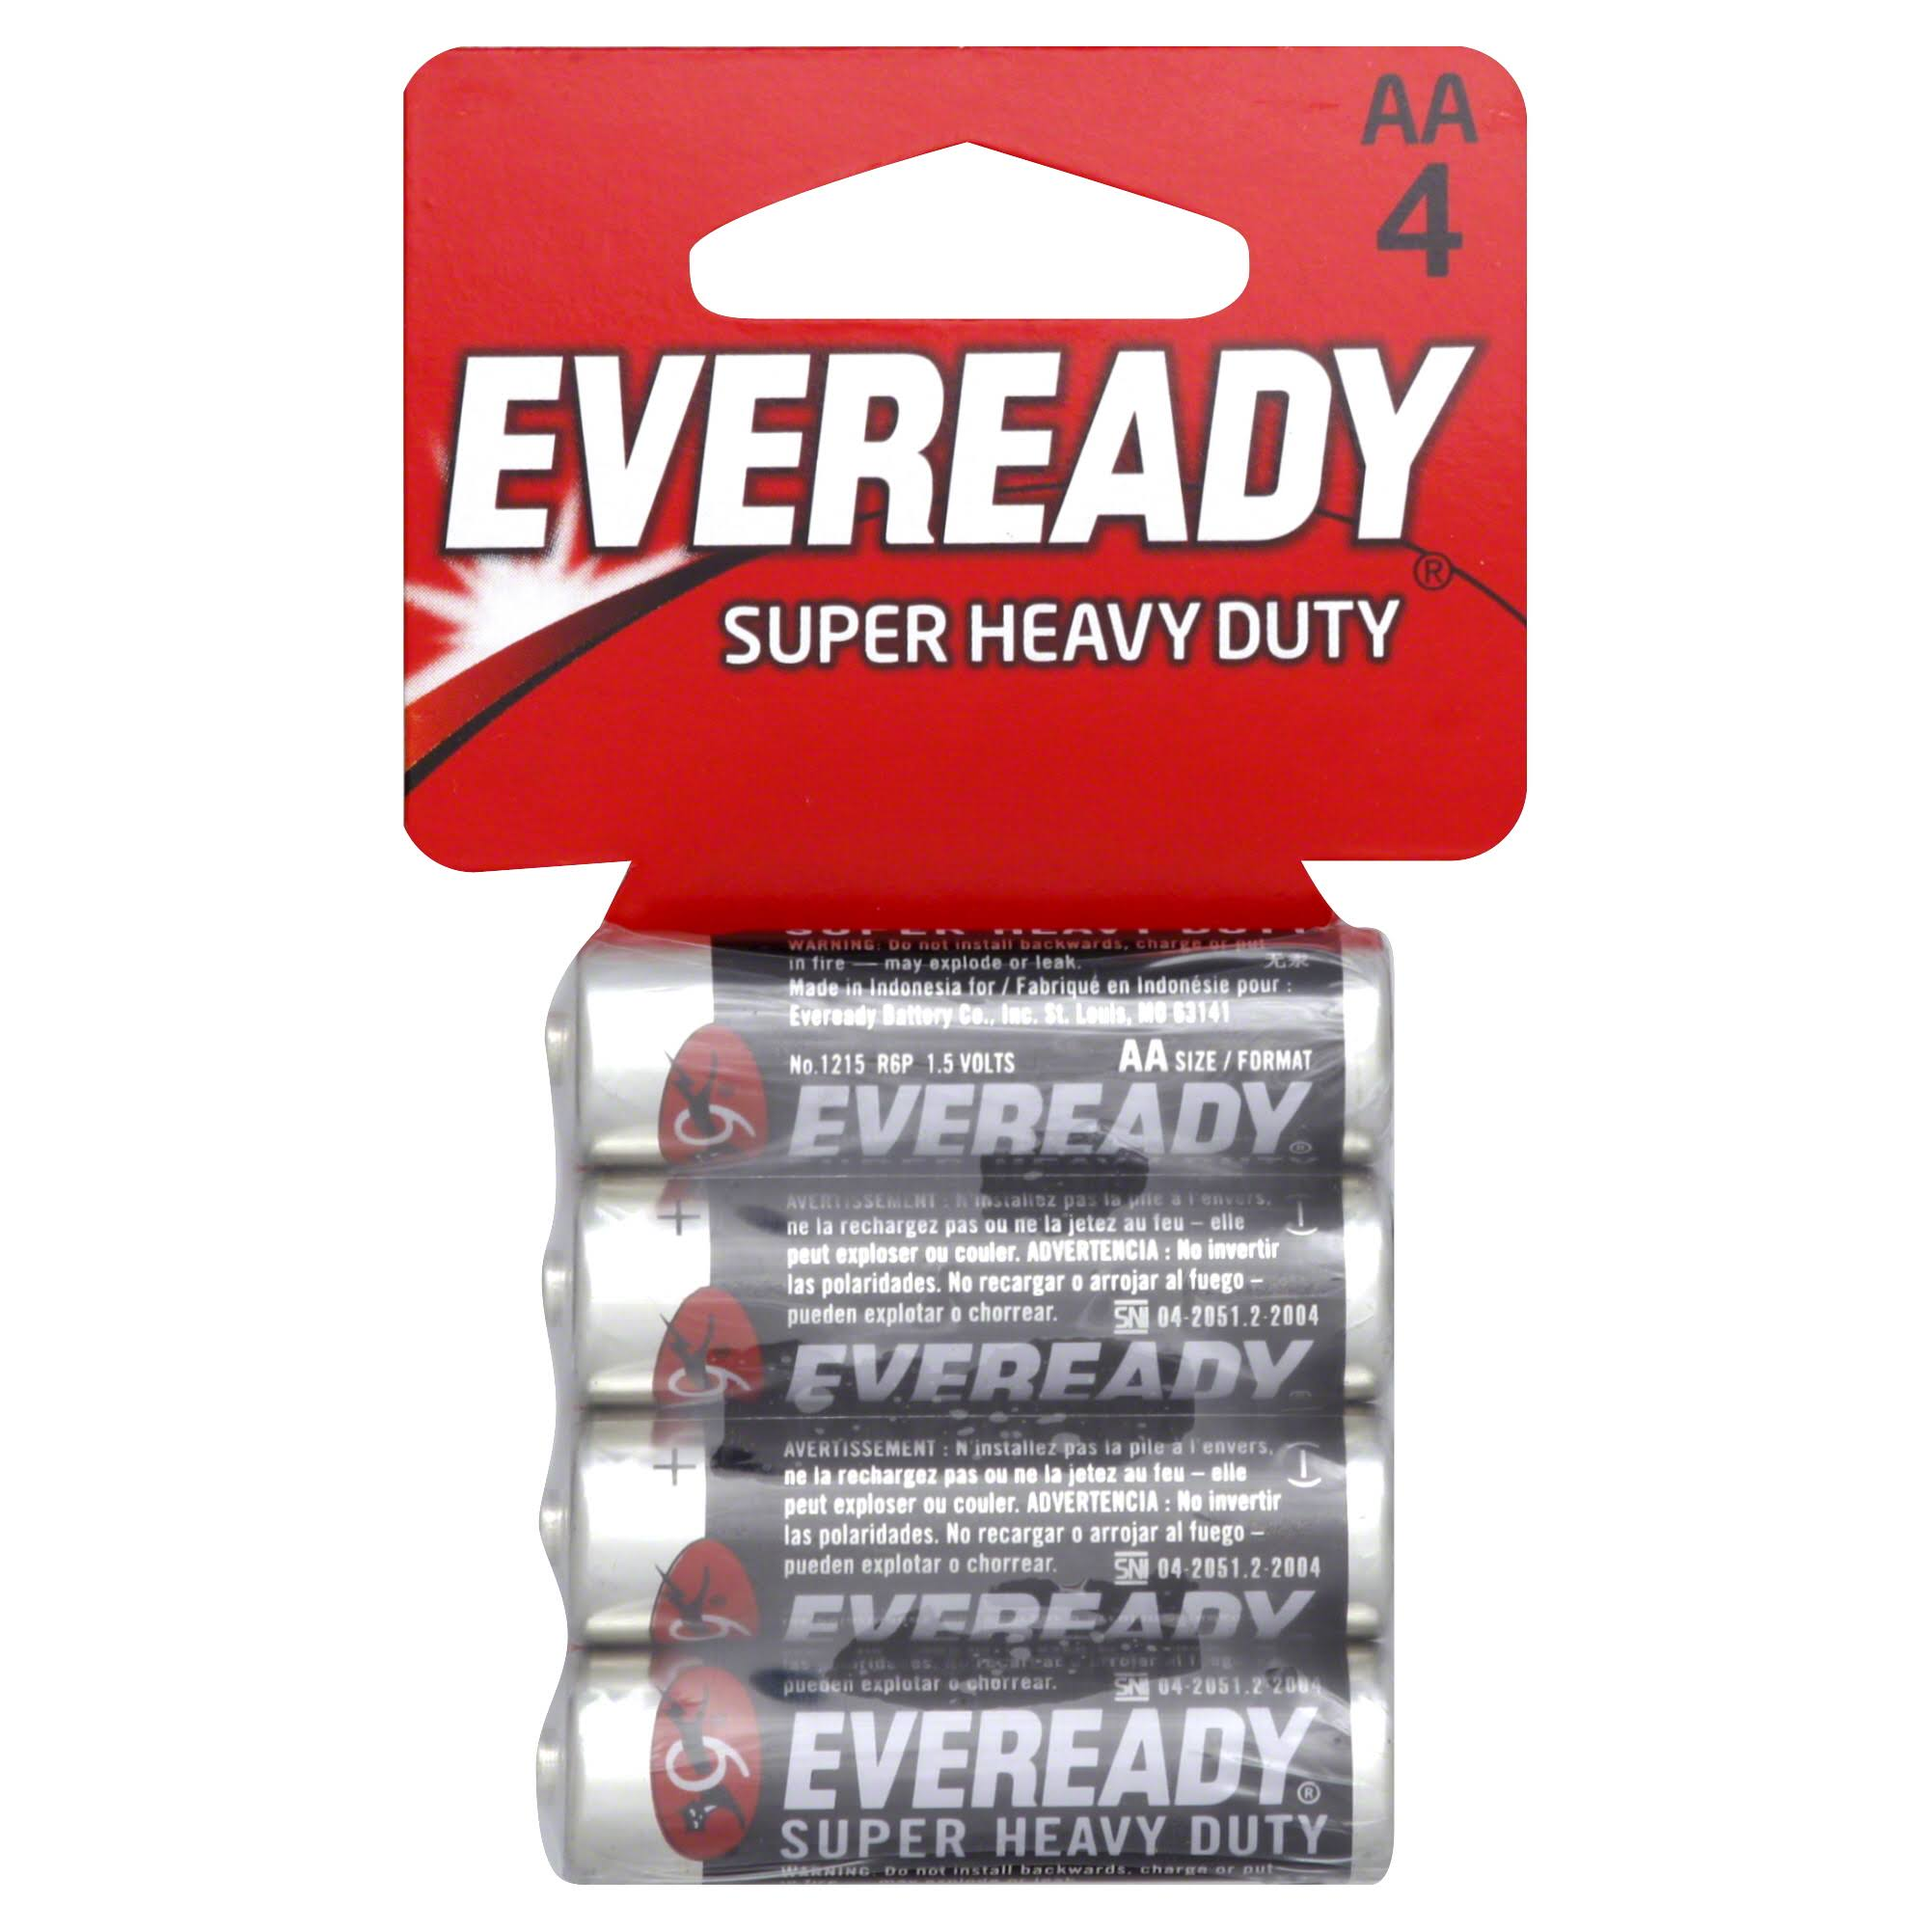 Eveready Super Heavy-Duty AA Batteries - 4 Pack